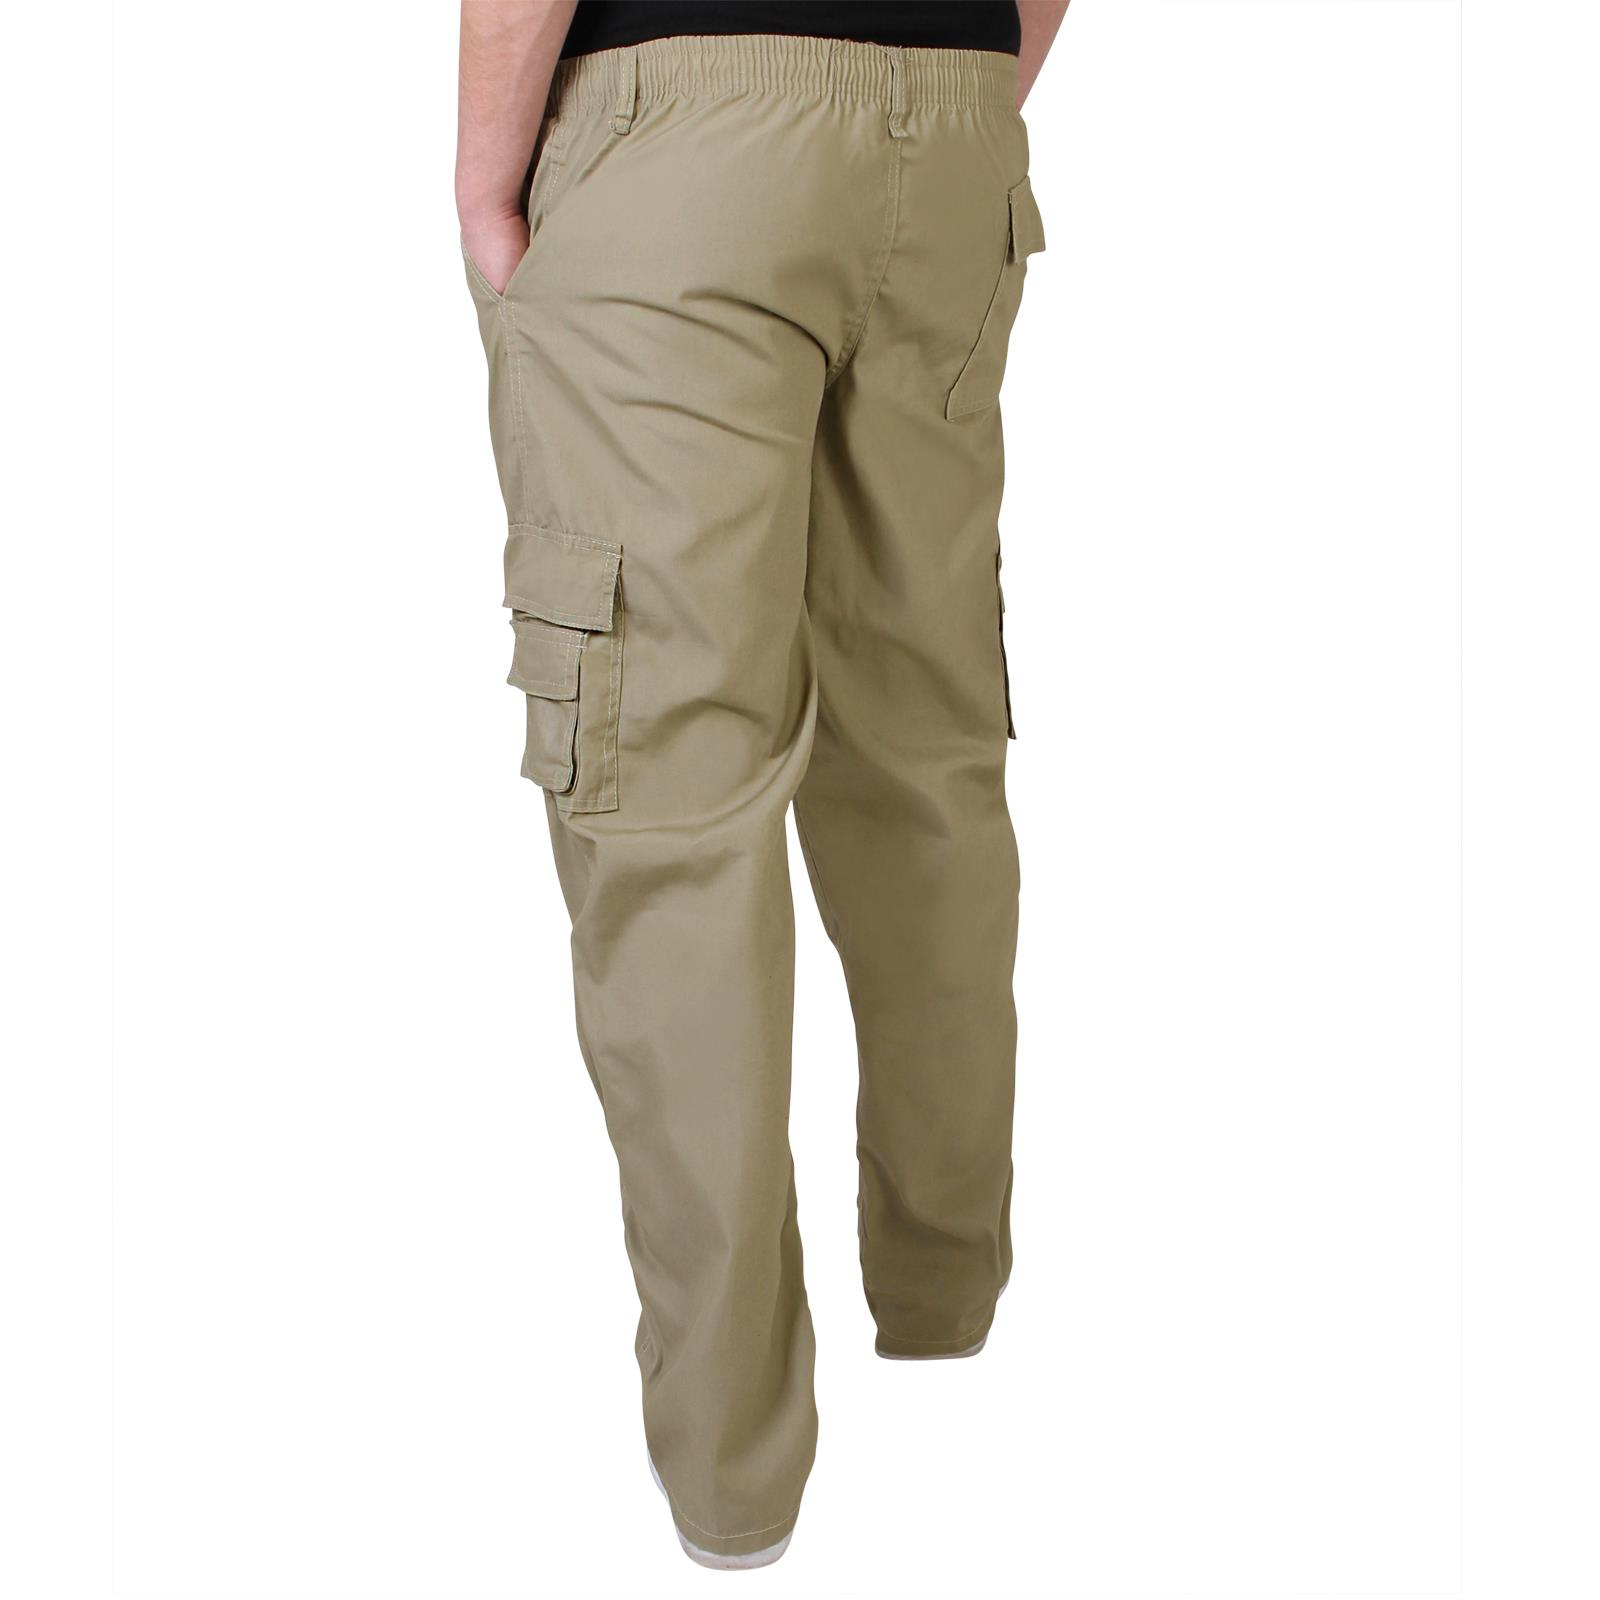 Mens-Army-Cargo-Trousers-Cotton-Combat-Pants-Military-Work-Chinos-Casual-Khakis thumbnail 31